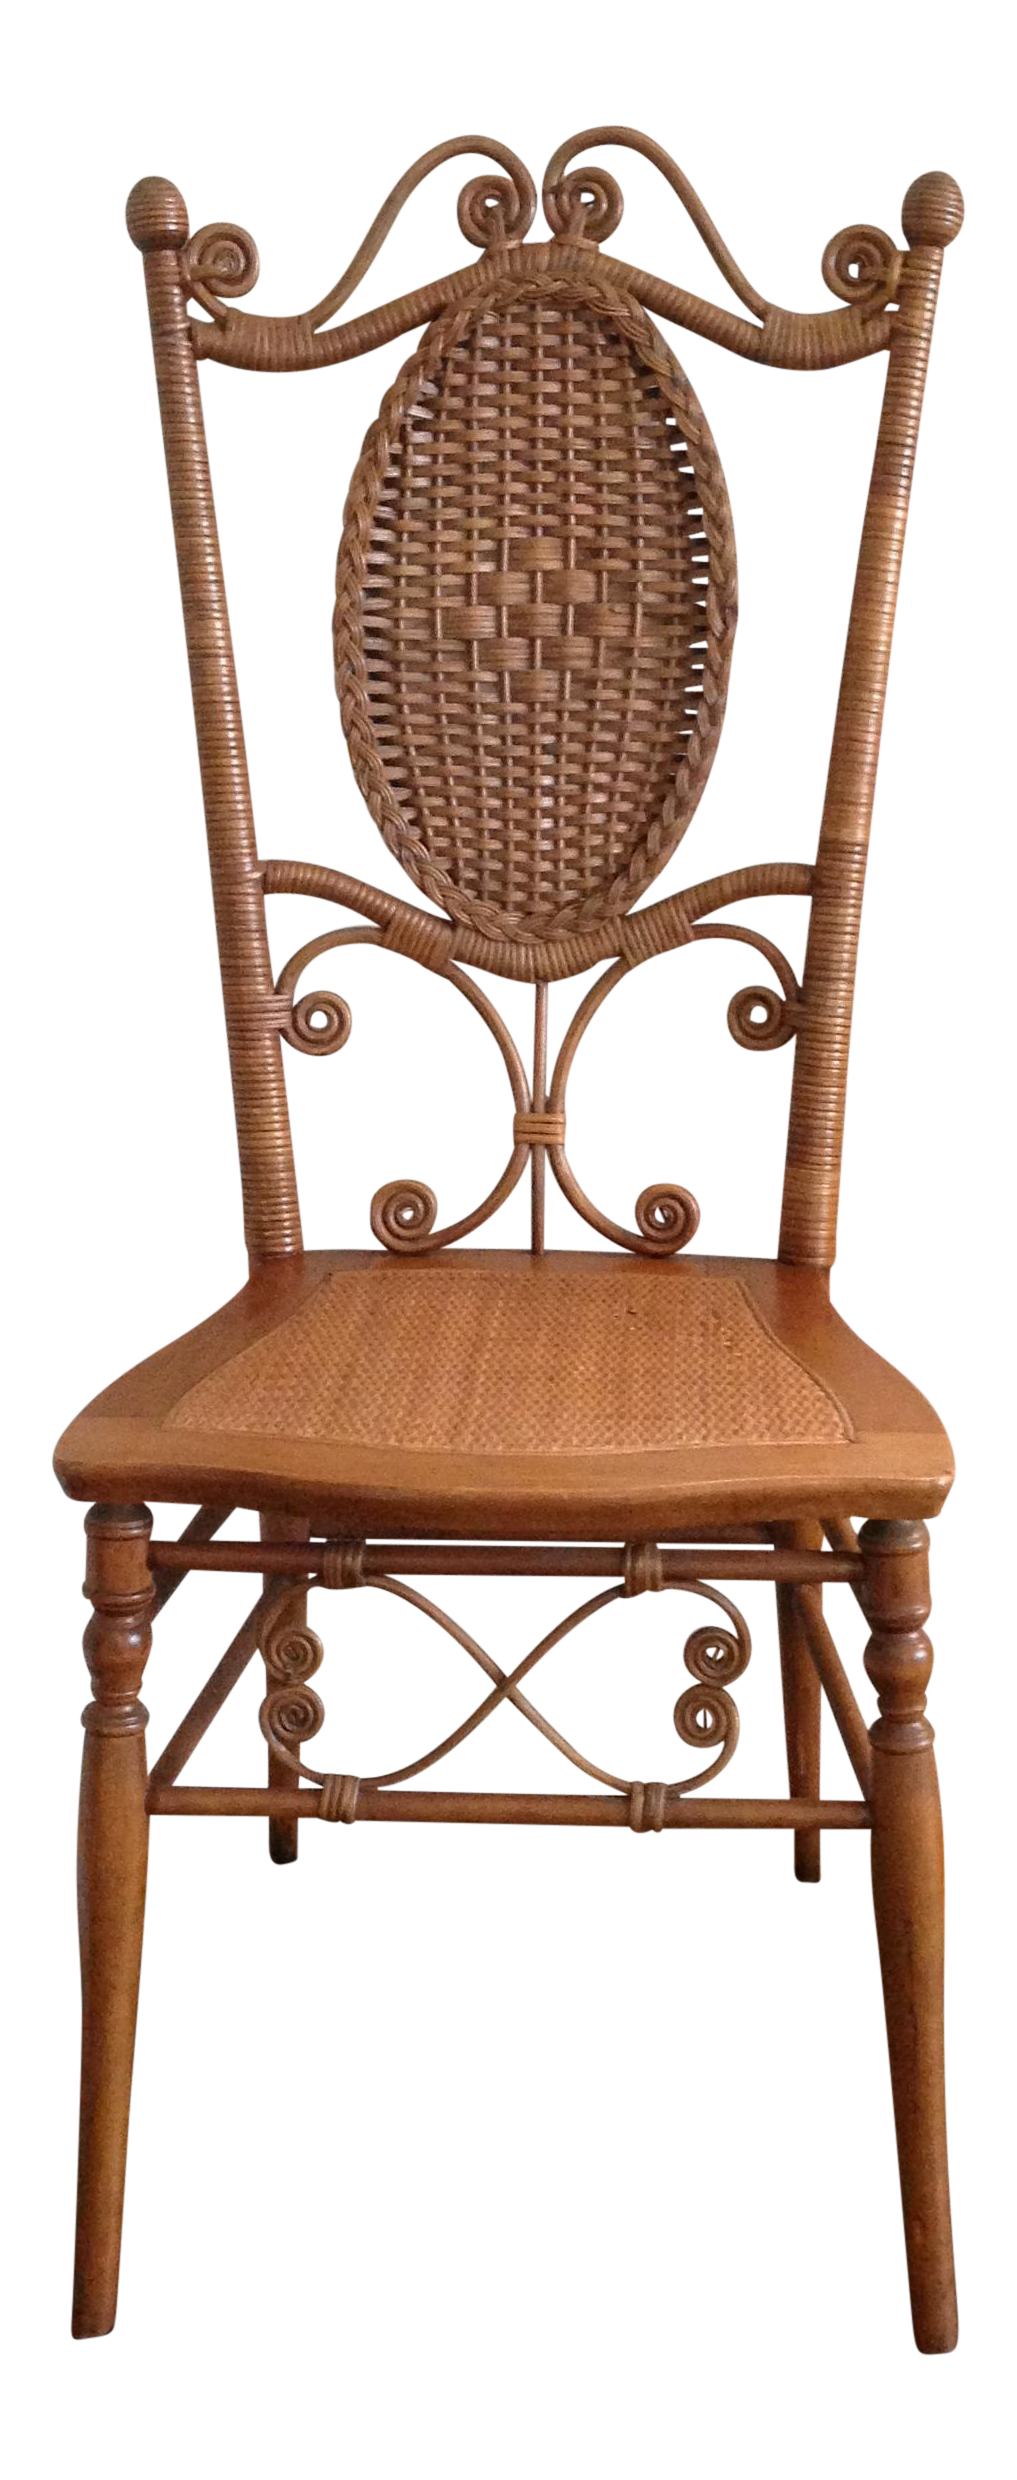 Heywood Brothers Wakefield Antique Victorian Wicker And Cane Chair   Image  1 Of 9